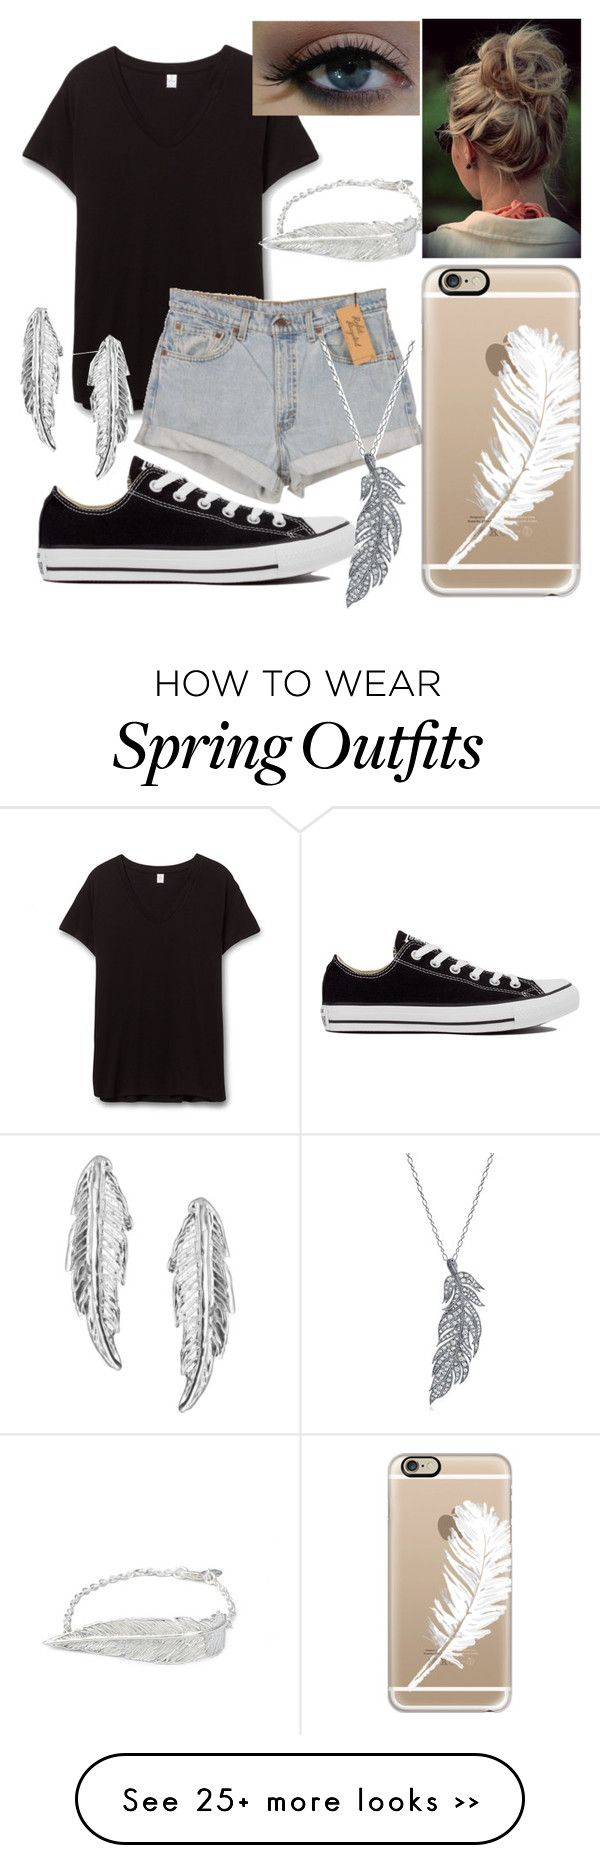 """School outfit"" by gabriela-27-99-11 on Polyvore featuring Levi's, Converse, Stone Paris, LeiVanKash and Casetify"